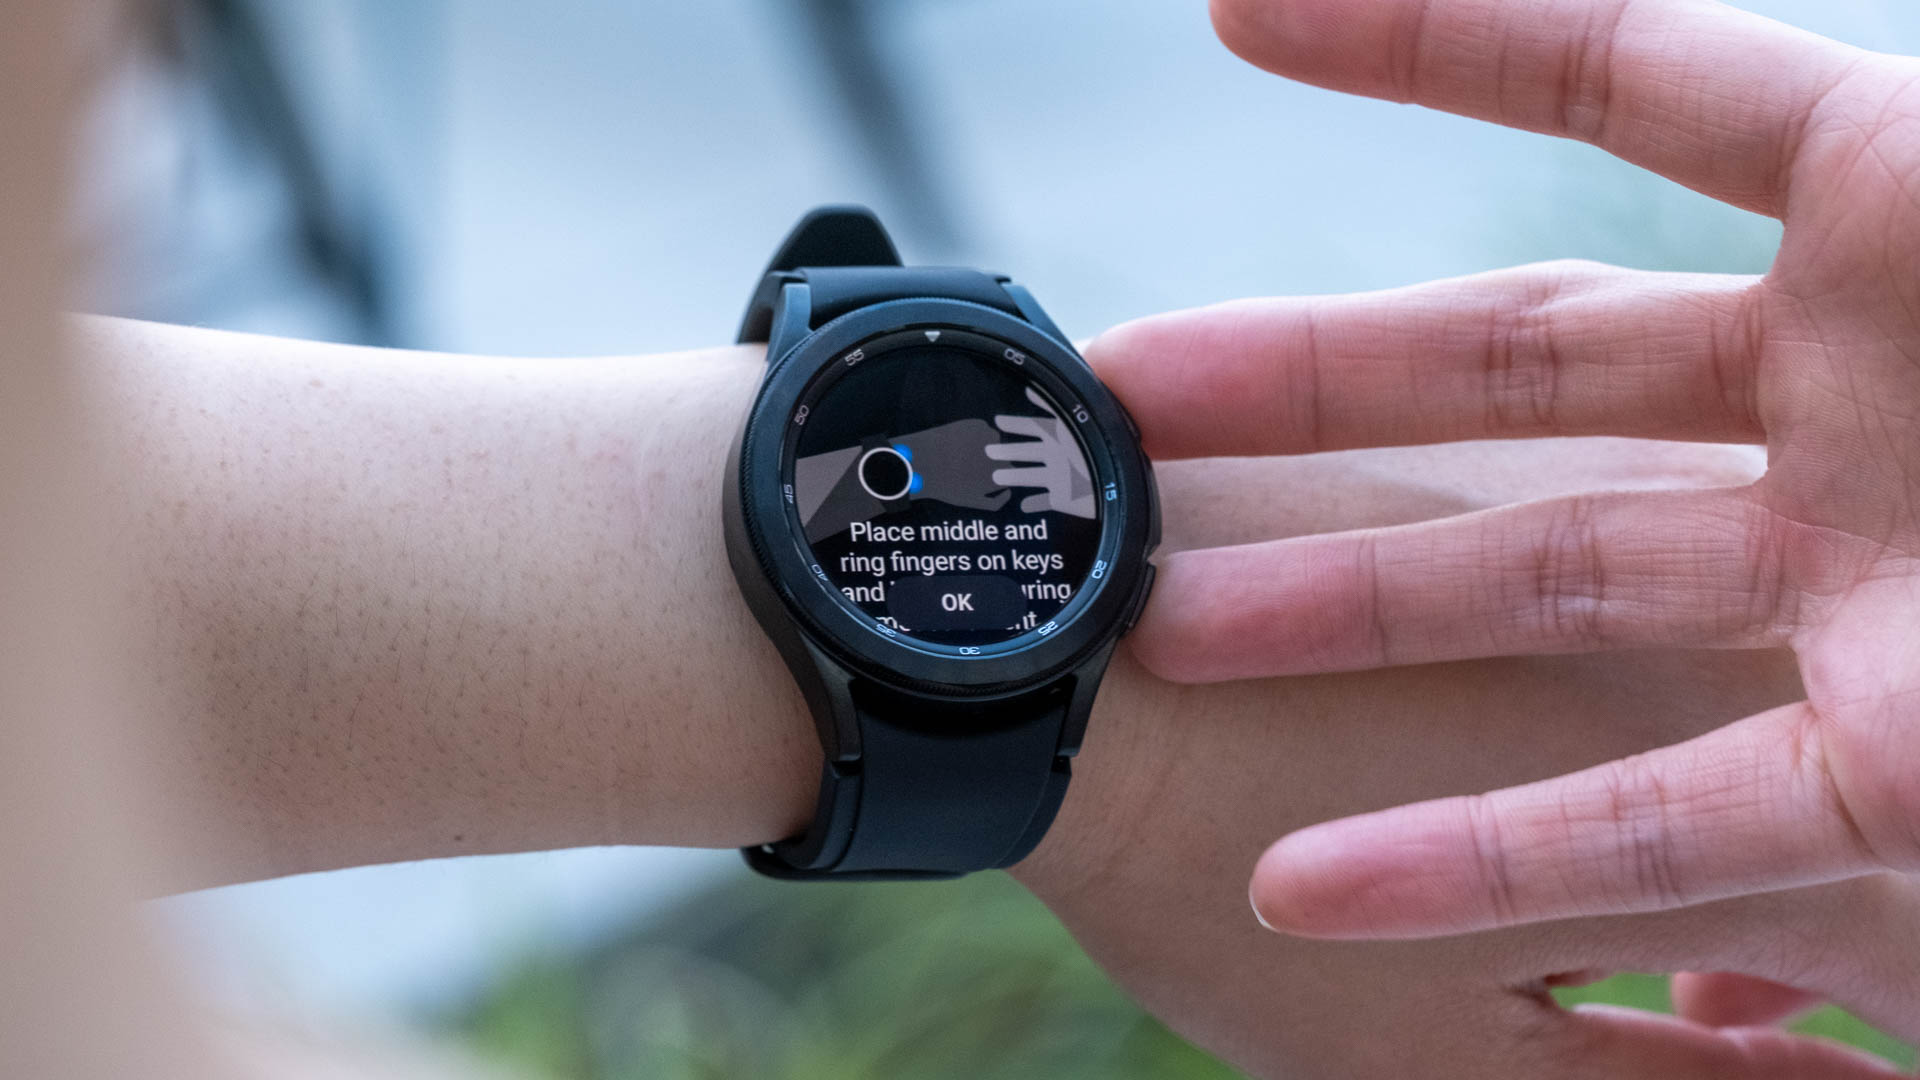 Taking a body composition reading on the Samsung Galaxy Watch 4